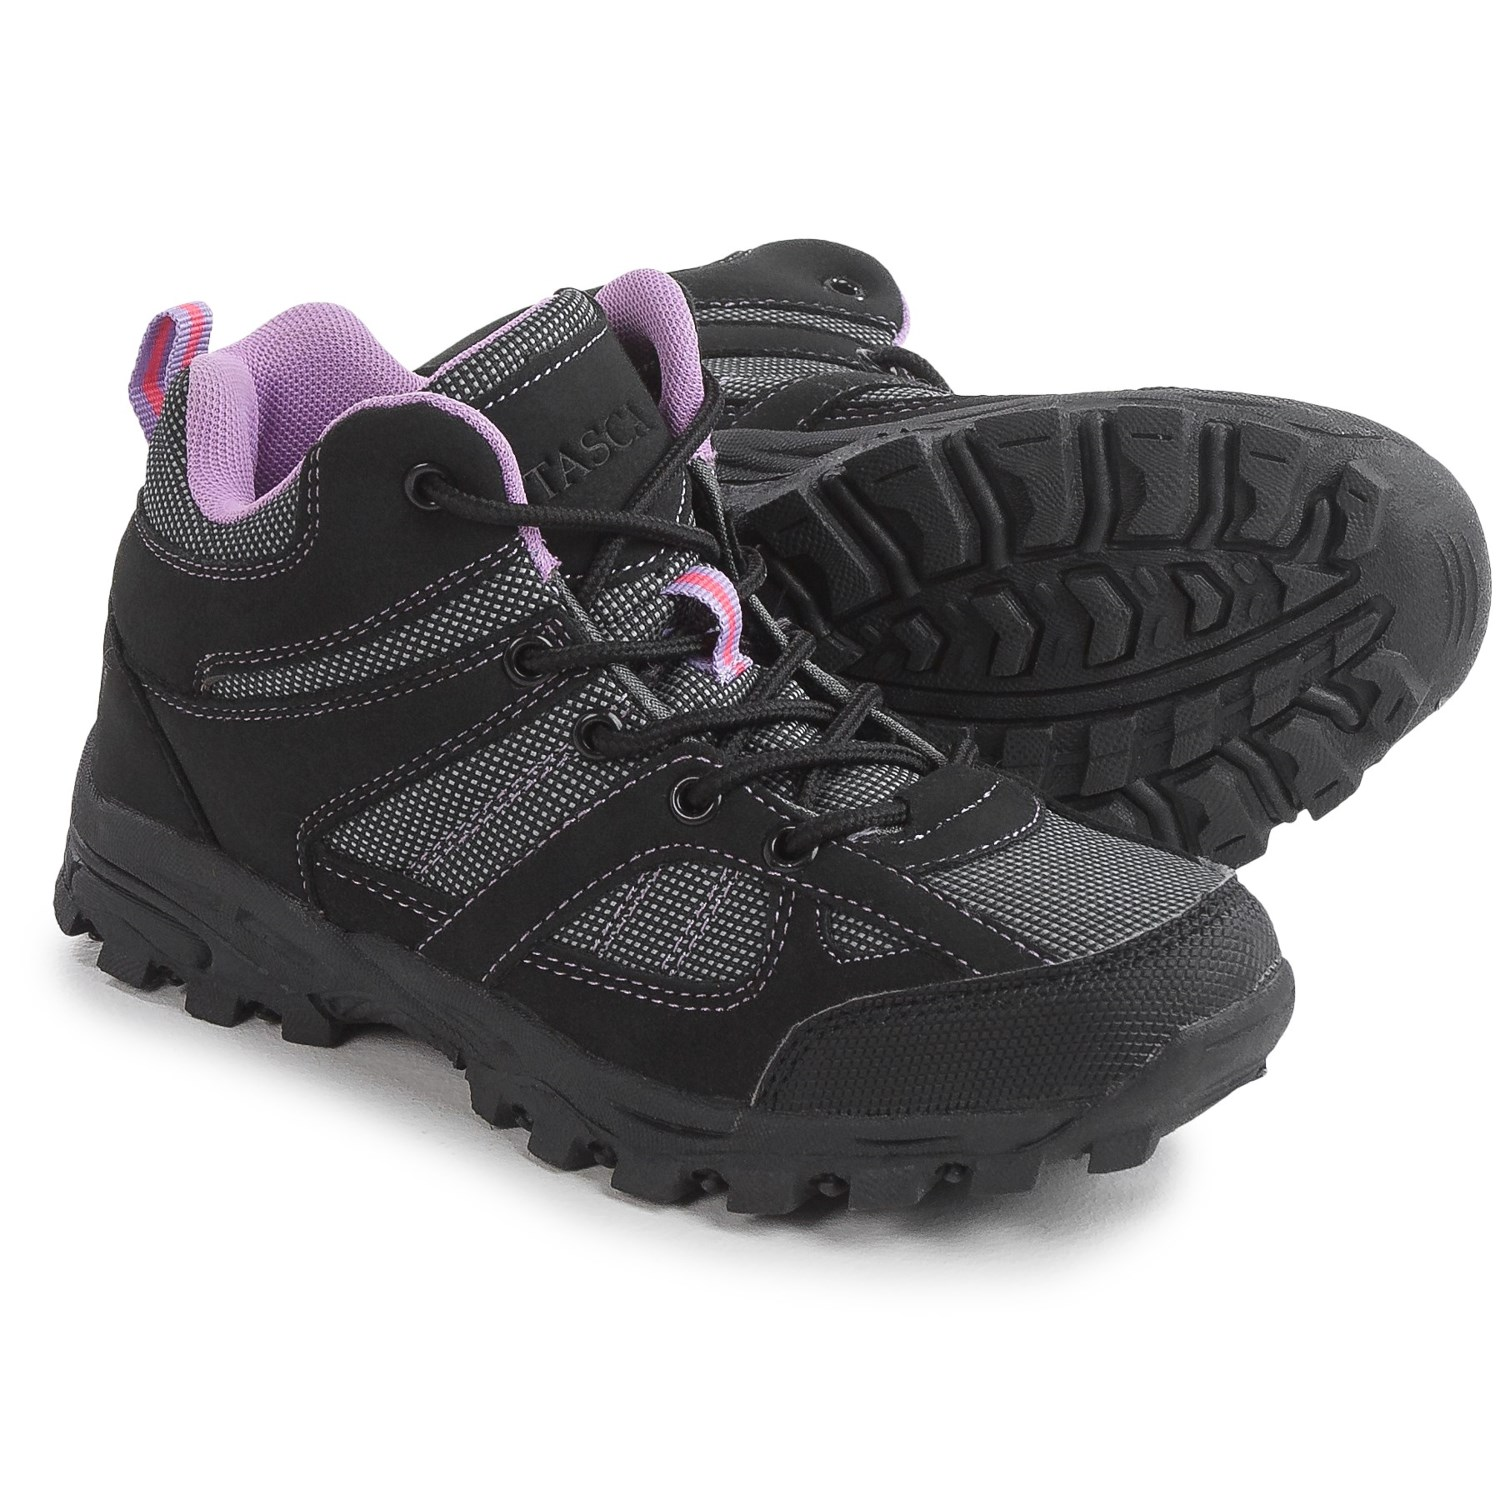 Itasca Stella Hiking Shoes For Little and Big Kids Save